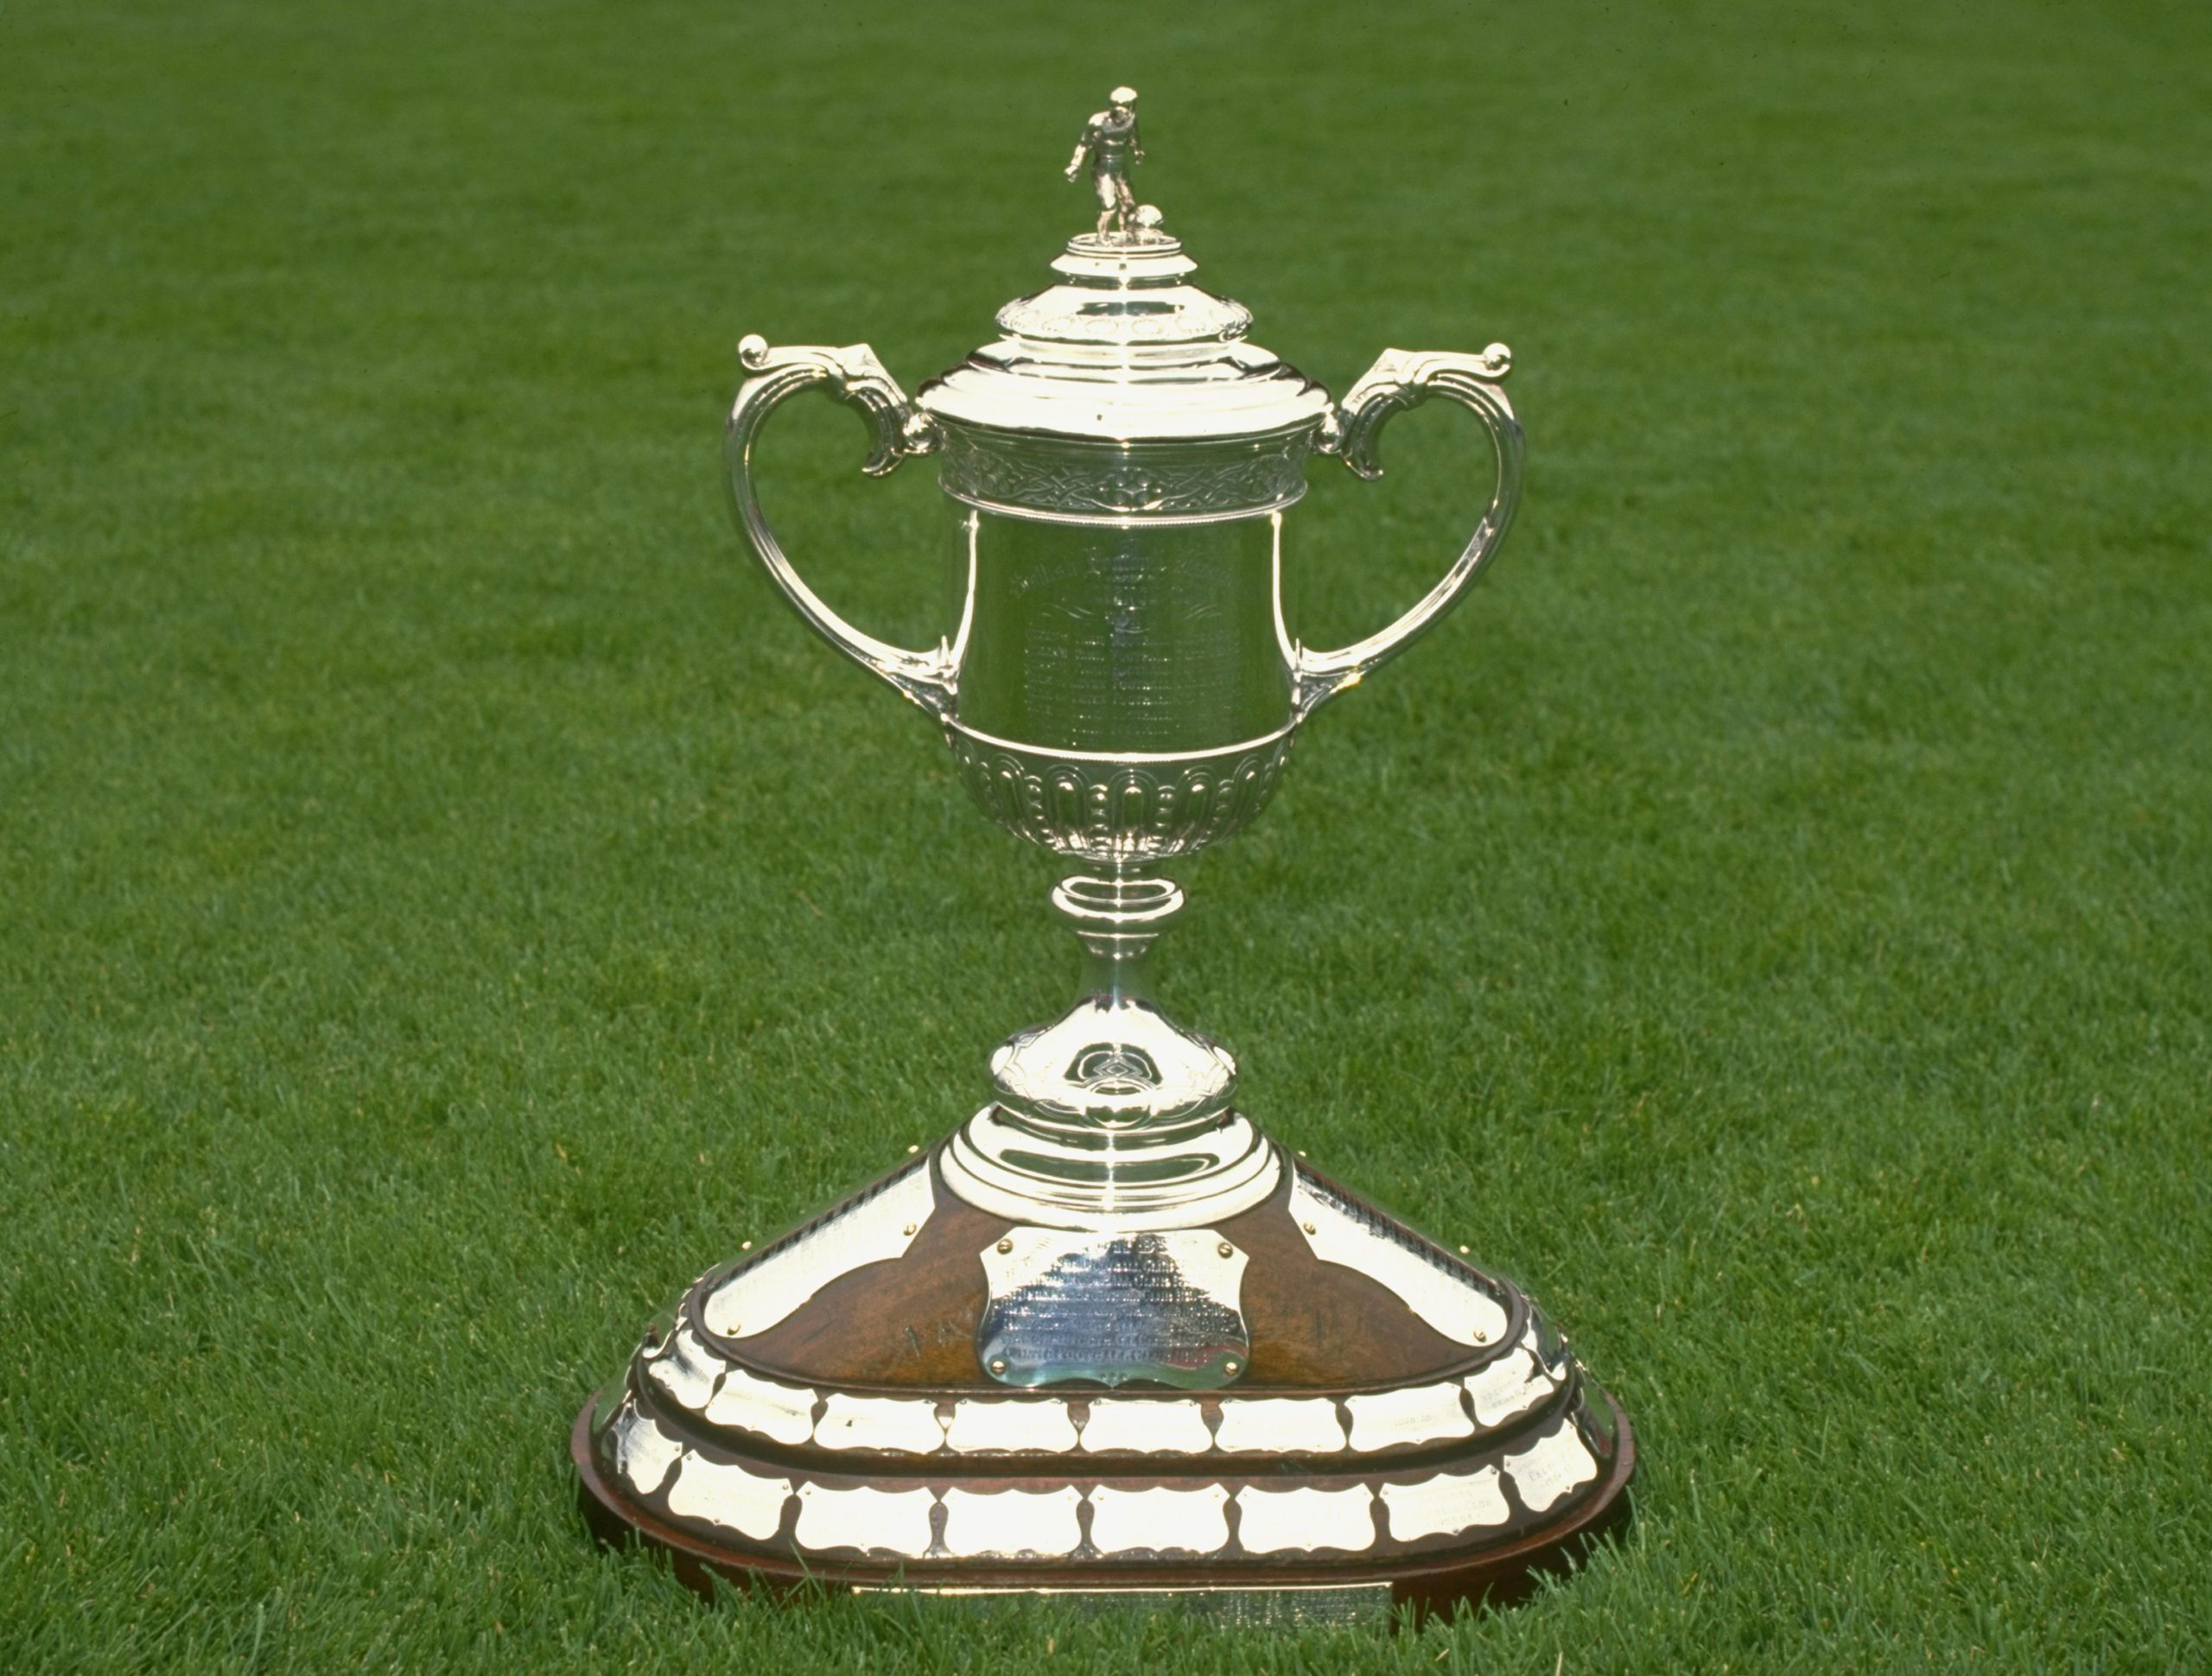 Scottish FA Cup Trophy